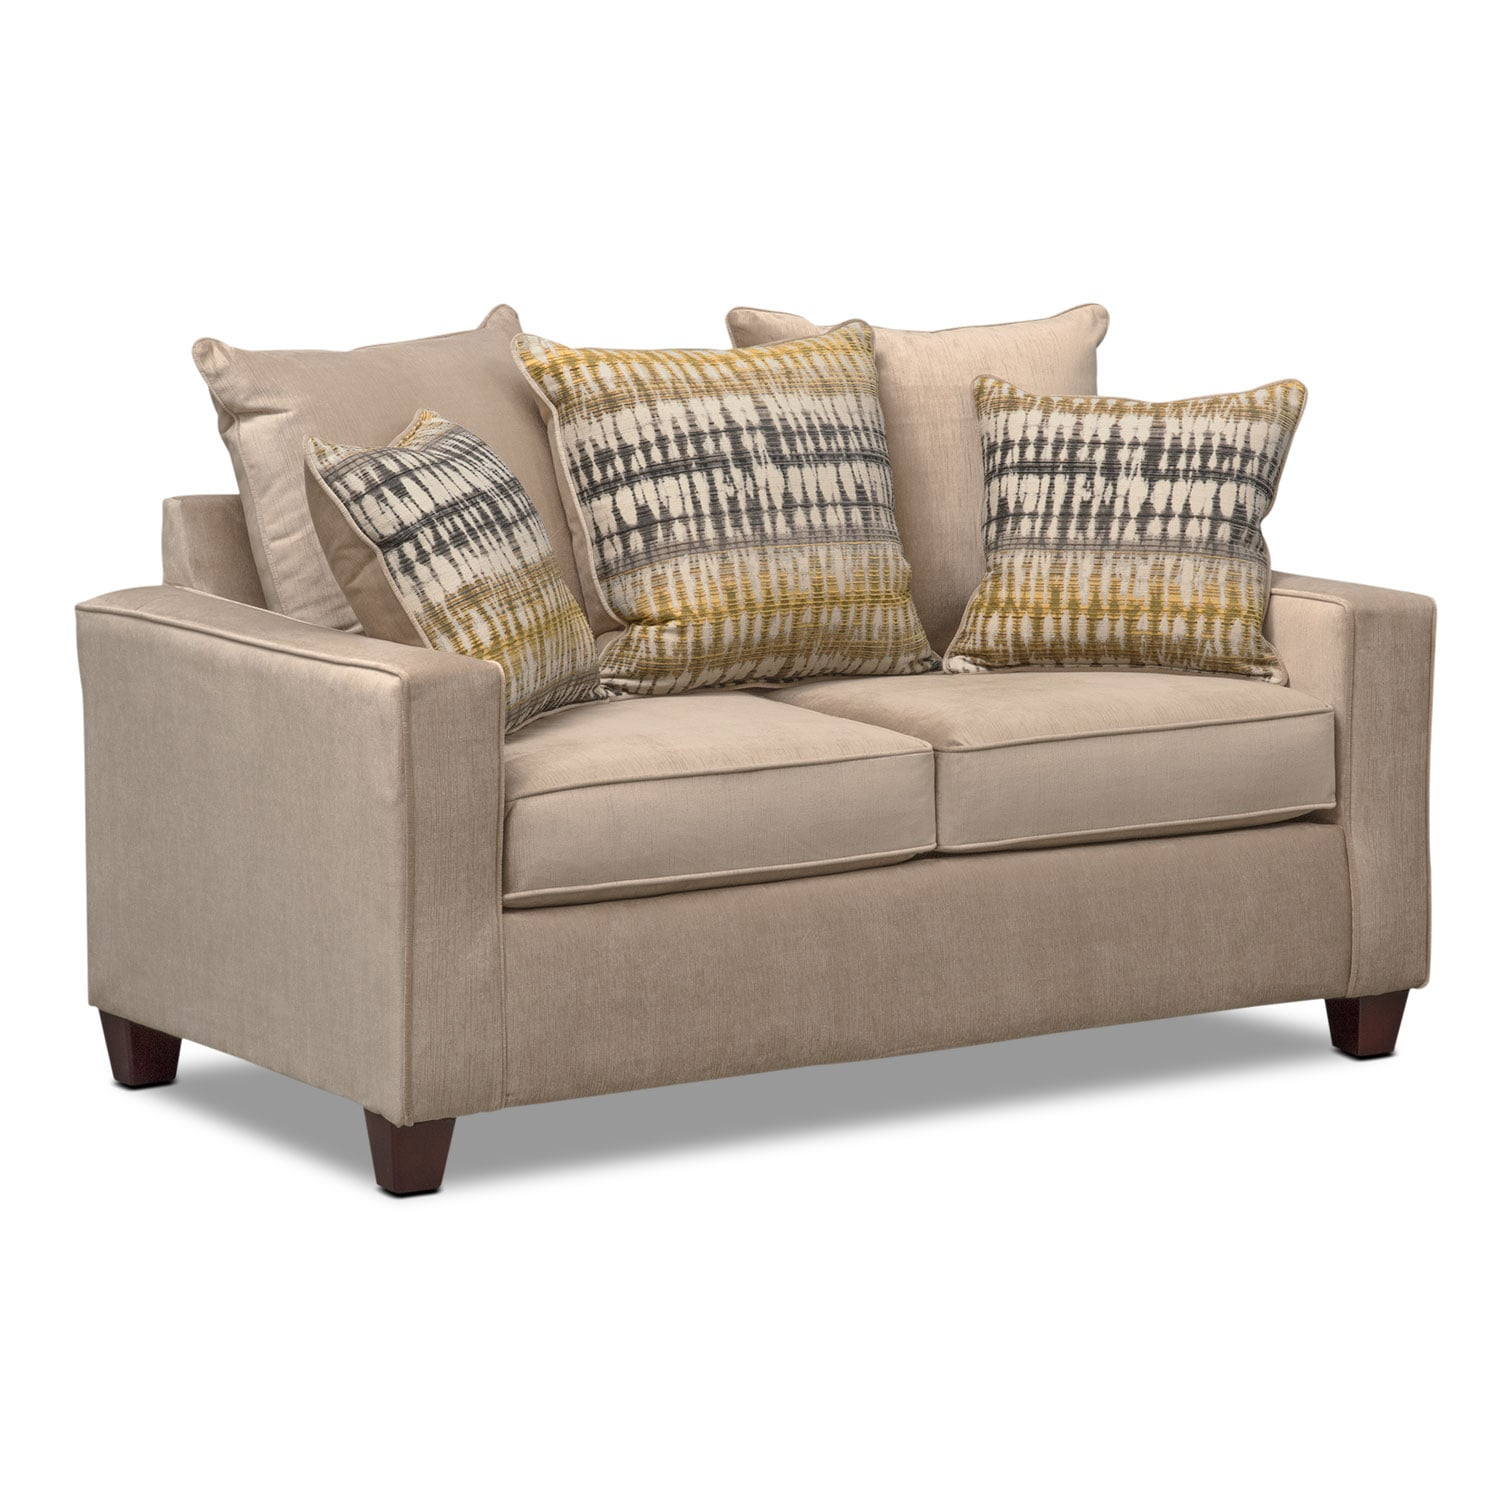 Living Room Furniture - Bryden Loveseat - Beige